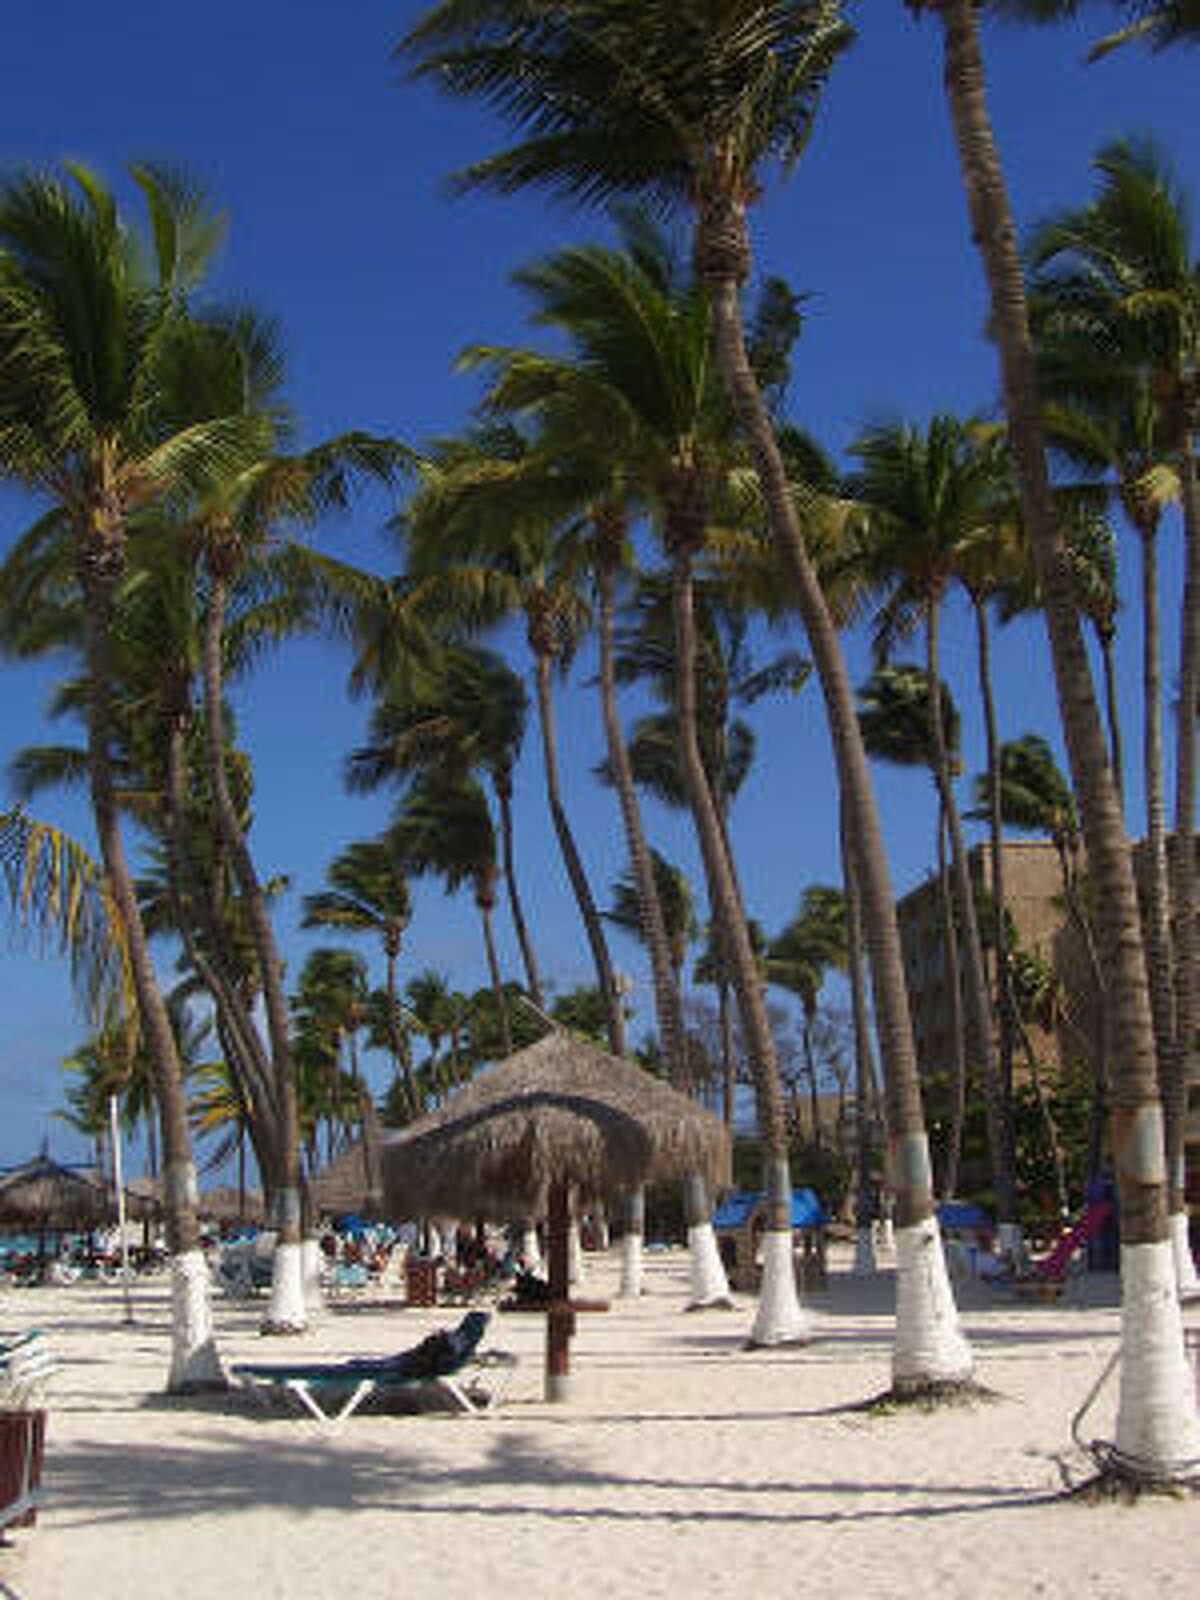 ARUBA: The western shore is known for its sugary sands. Palm trees and the island?s large, high-rise hotels line the beach. The beaches are the biggest draw to the island, which is 19 miles long and six miles wide.